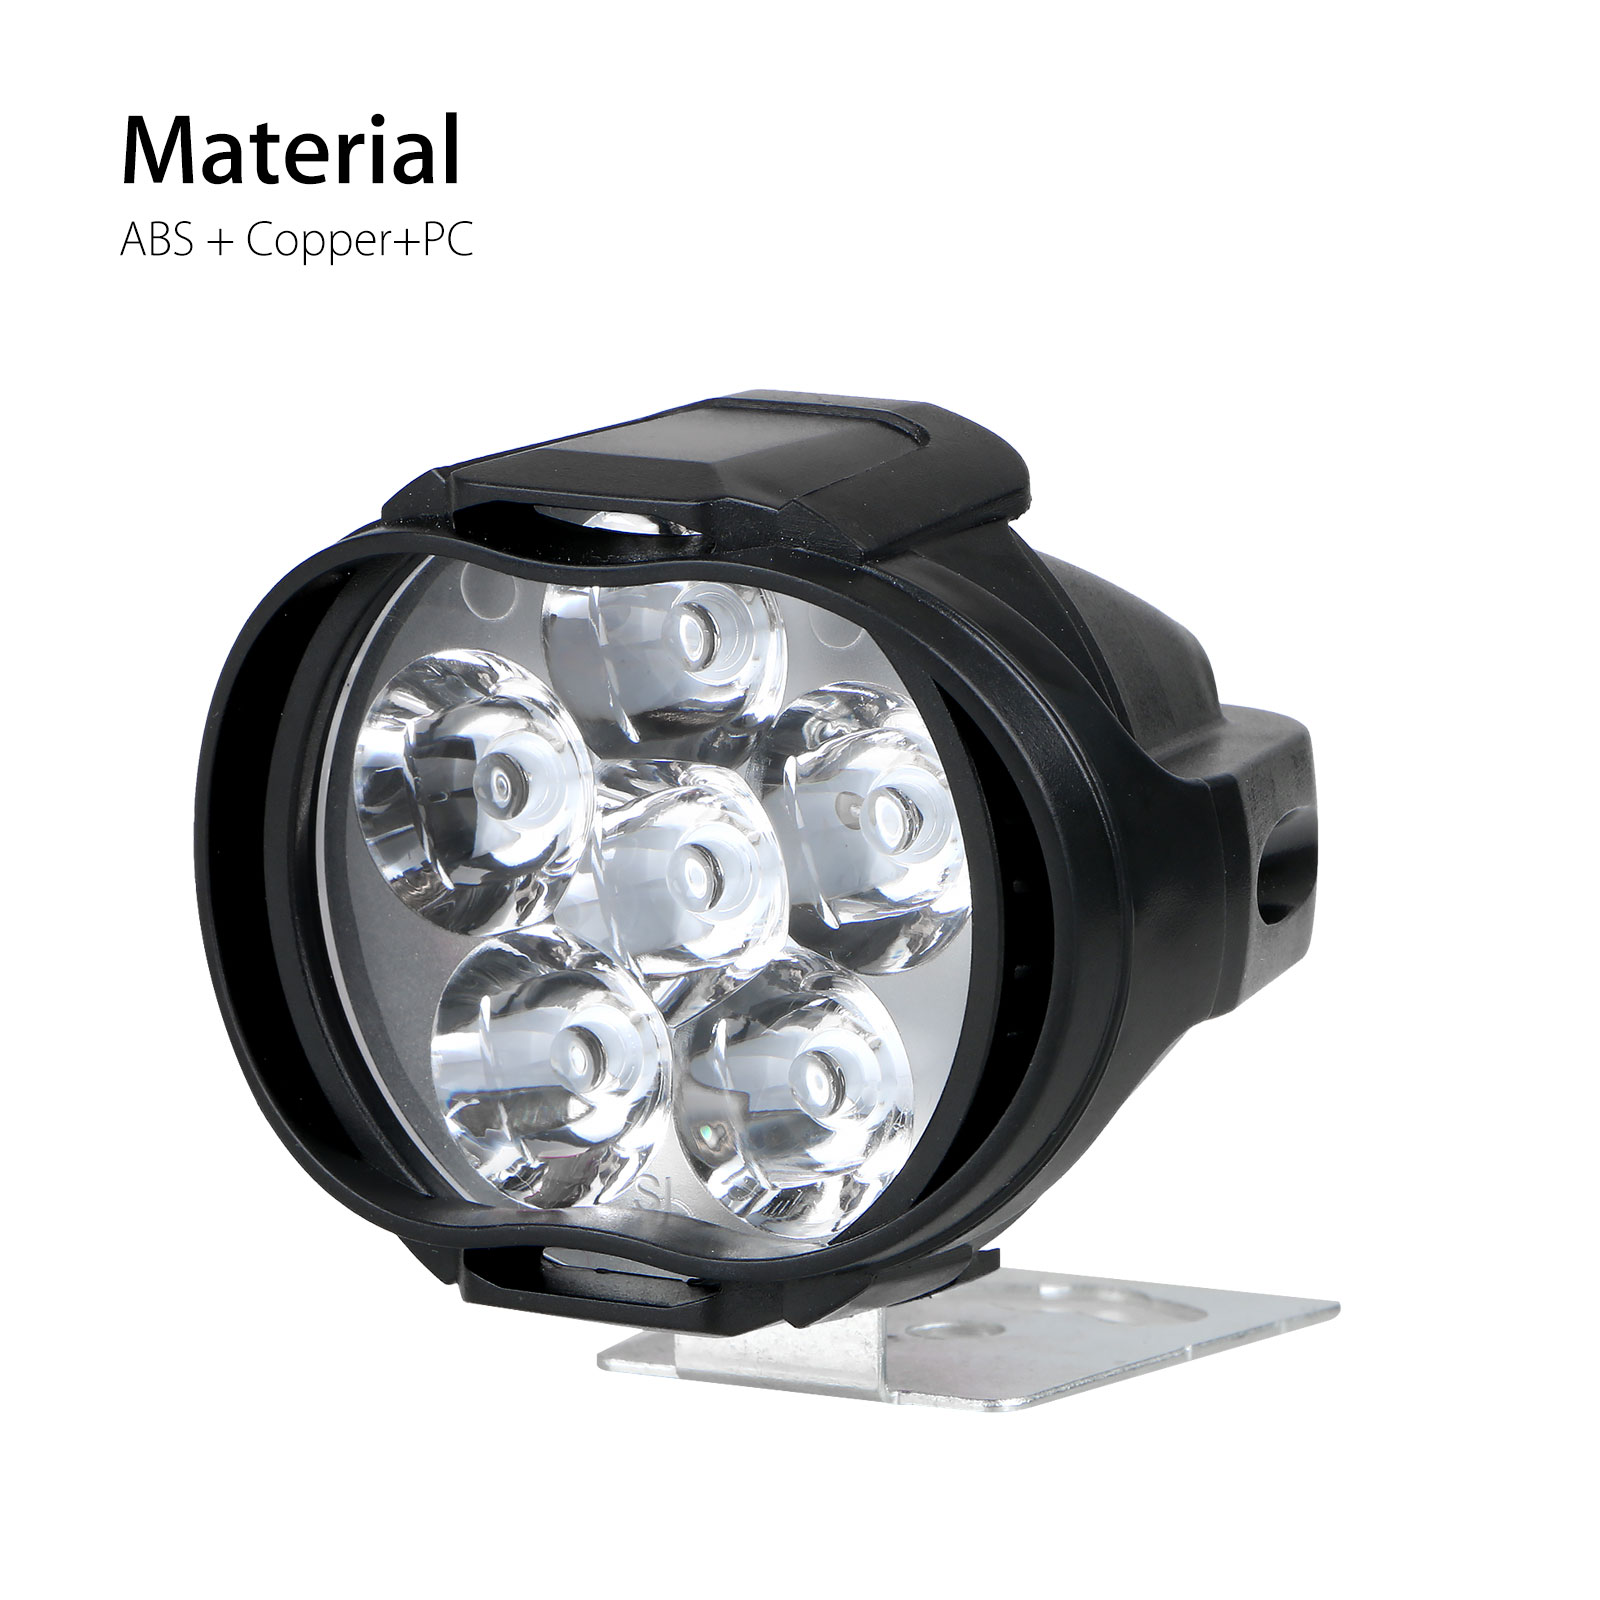 2Pcs-6LED-White-Motorcycle-Headlight-Spot-Light-DRL-Driving-Fog-Lamp-Waterproof thumbnail 6